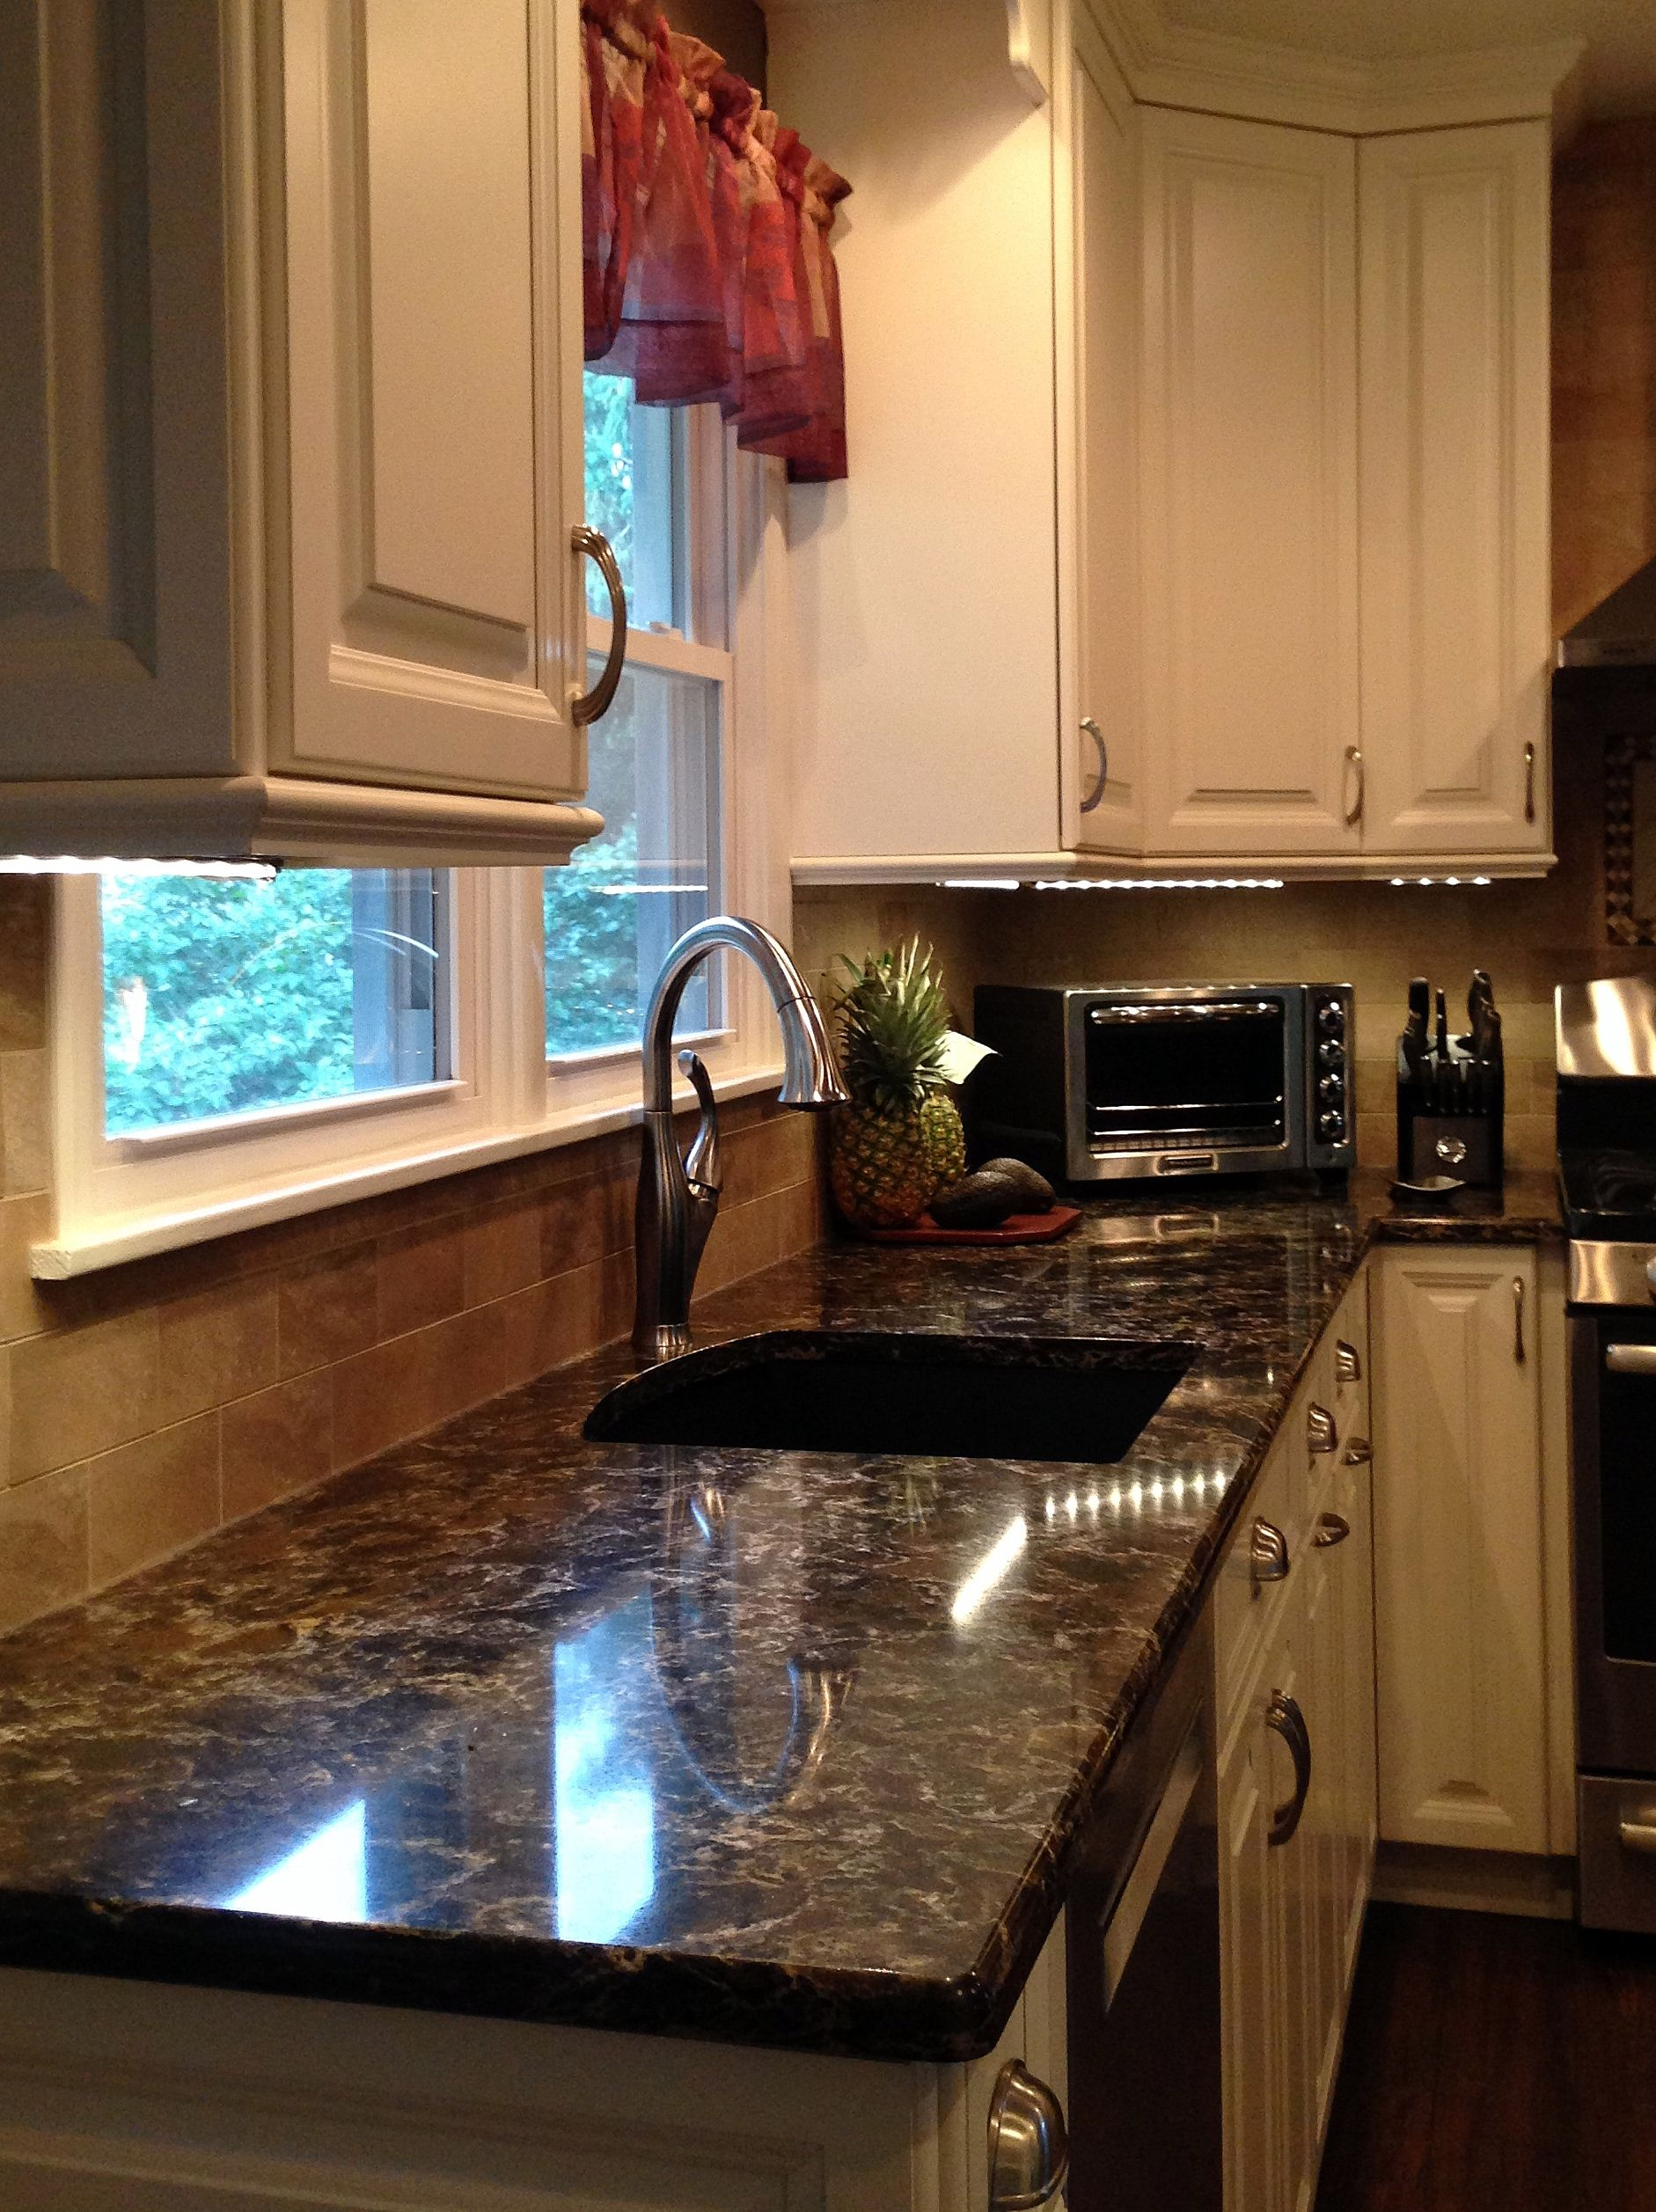 White Millbrook Kitchen With Laneshaw Quartz Countertops Of - Millbrook kitchen cabinets